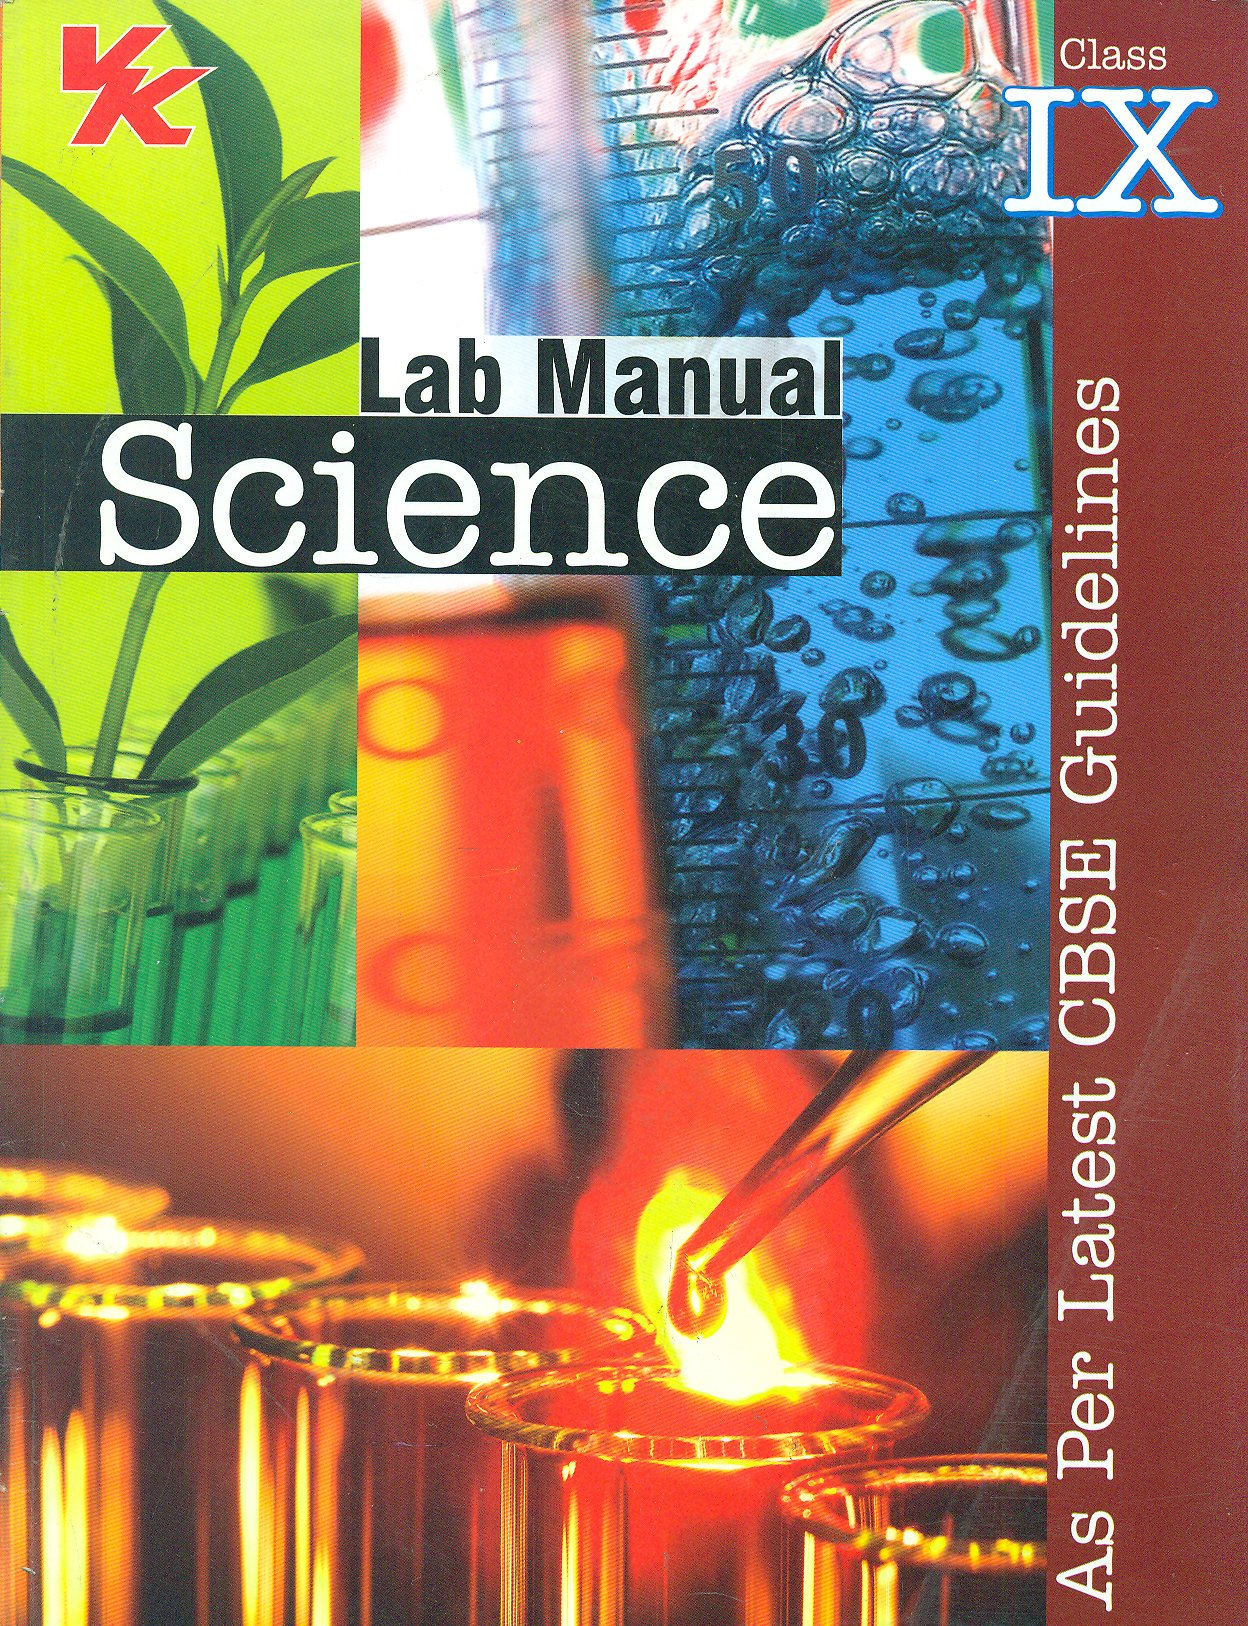 Lab Manual Science Class IX As Per Latest CBSE Guidelines: Amazon.in: P.  Ray: Books